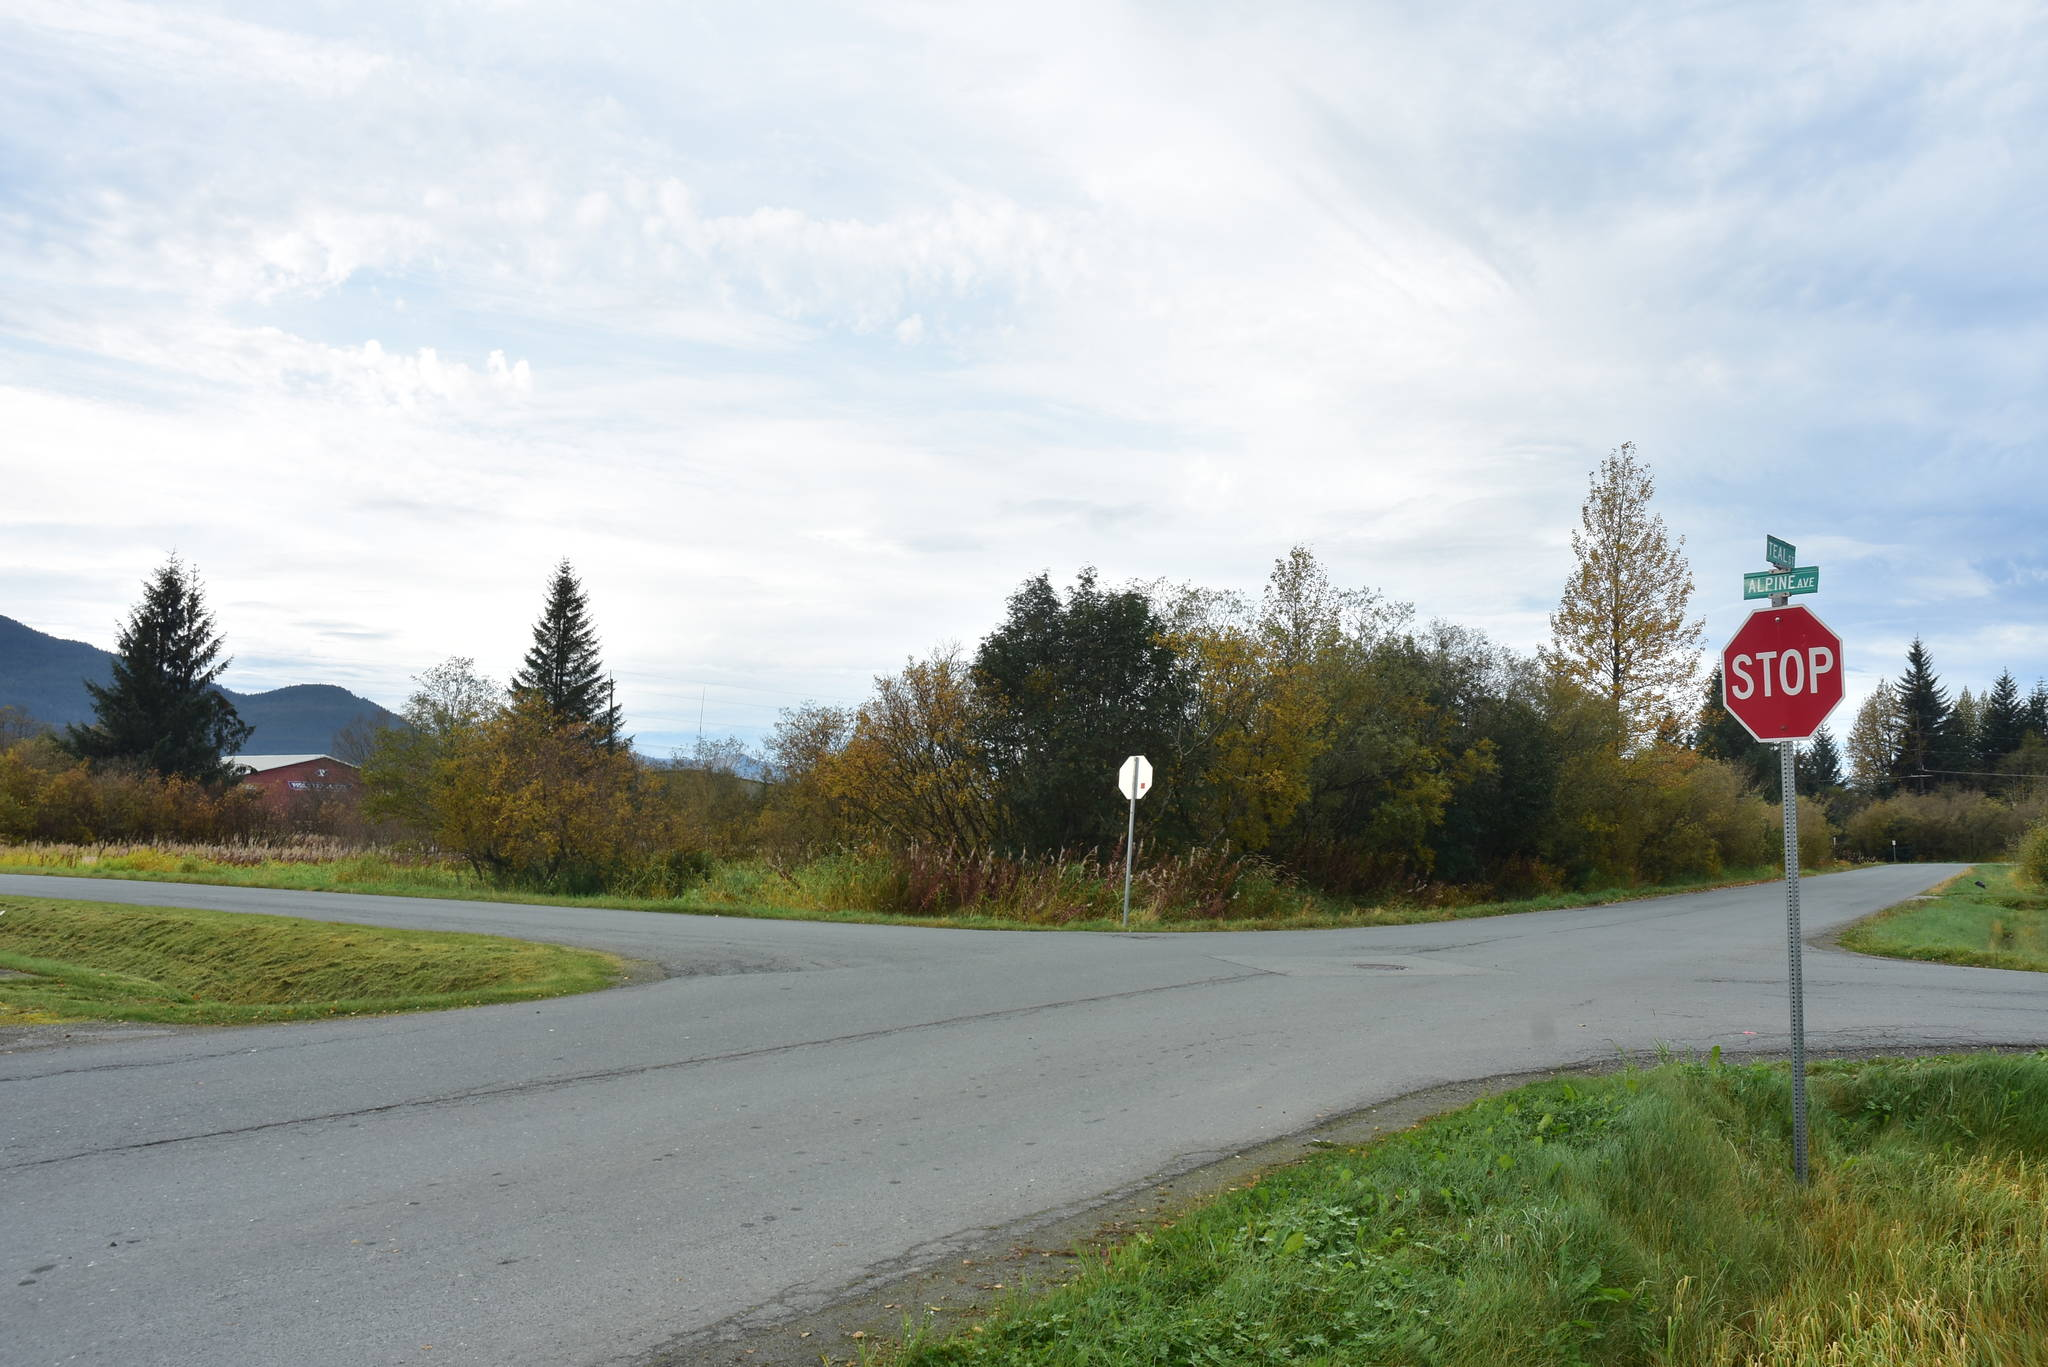 The site of the future Glory Hall at the corner of Teal Street and Alpine Avenue in the Mendenhall Valley. Co-located will be the Southeast Community Services Center, forming and integrated campus, Wednesday, Sept. 30, 2020. (Peter Segall / Juneau Empire)